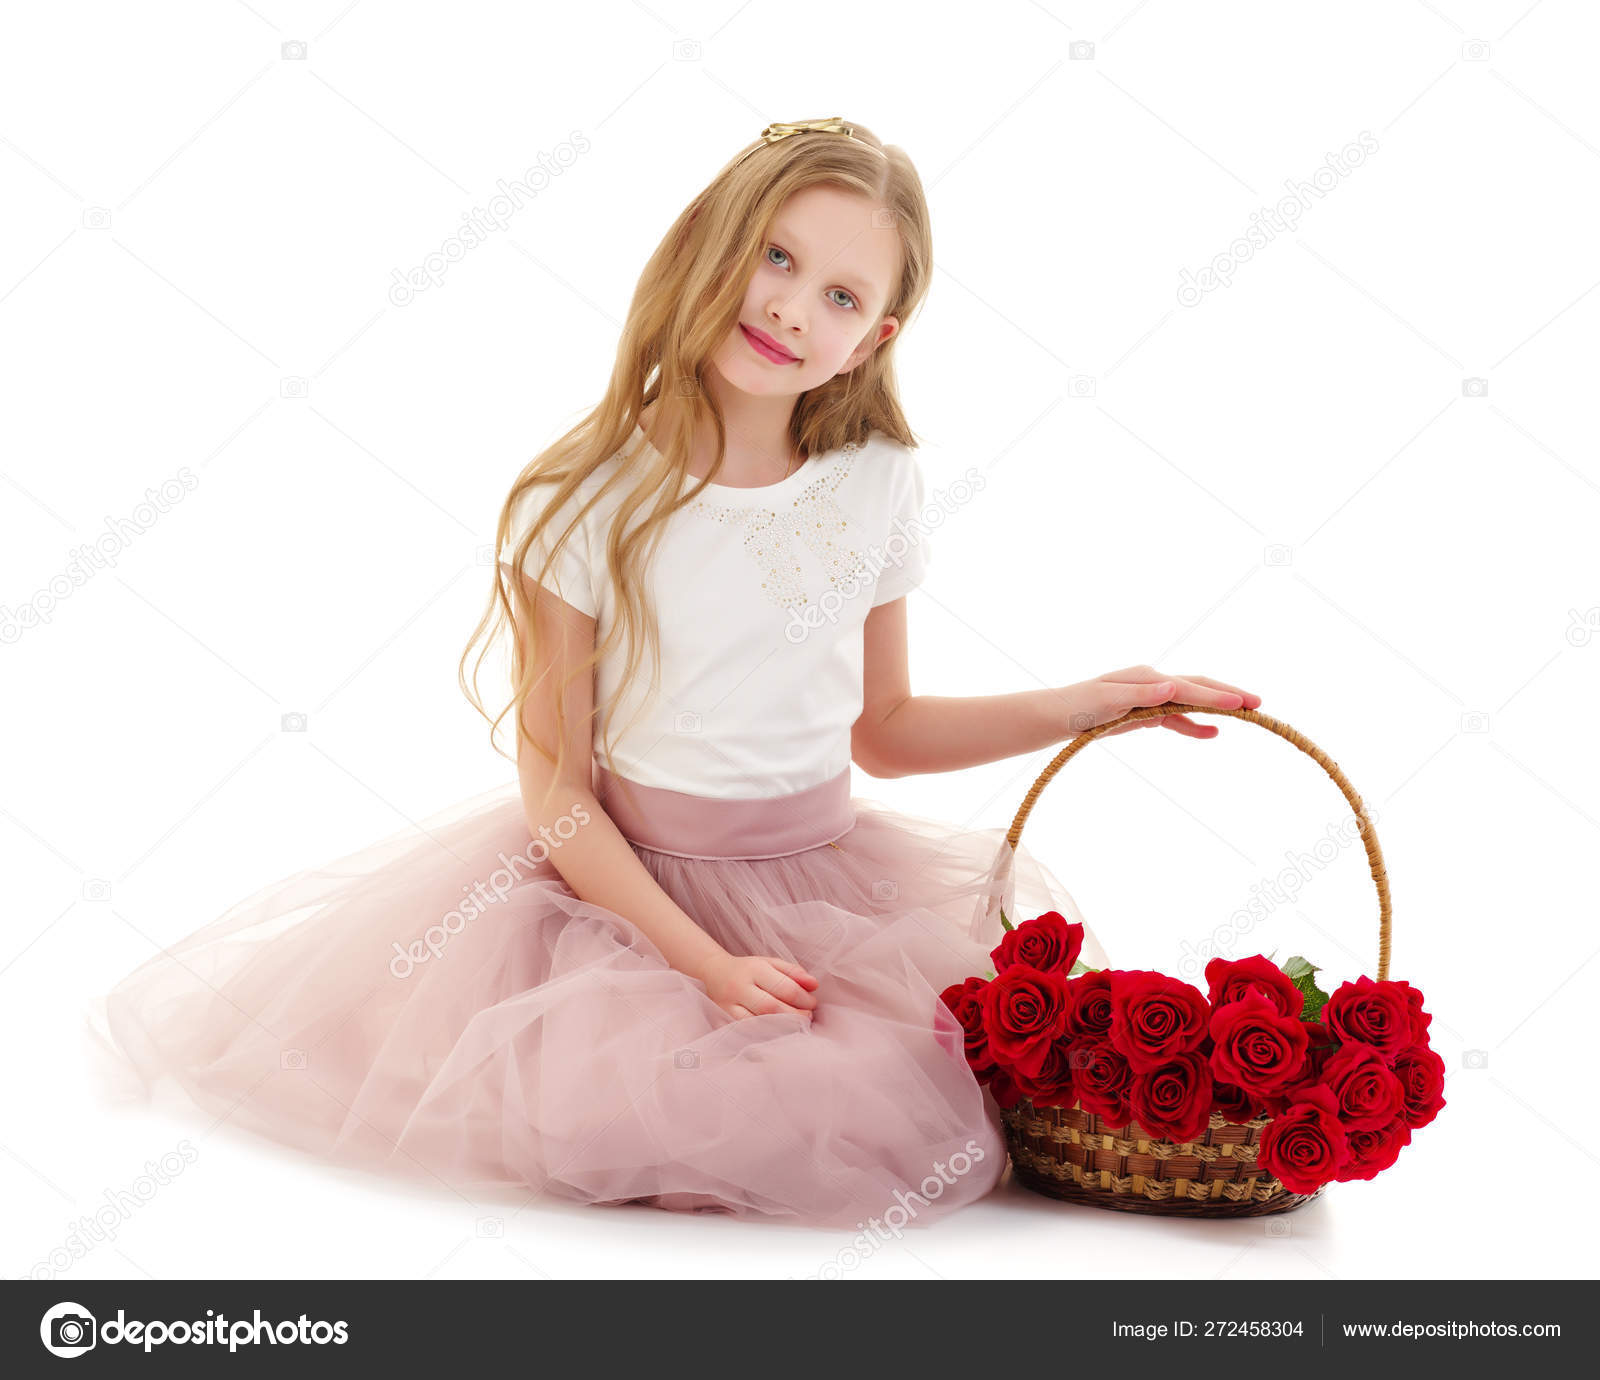 749033b9ebf34 Charming little girl with a basket of flowers. Concept of holiday, summer  mood. Isolated on white background.